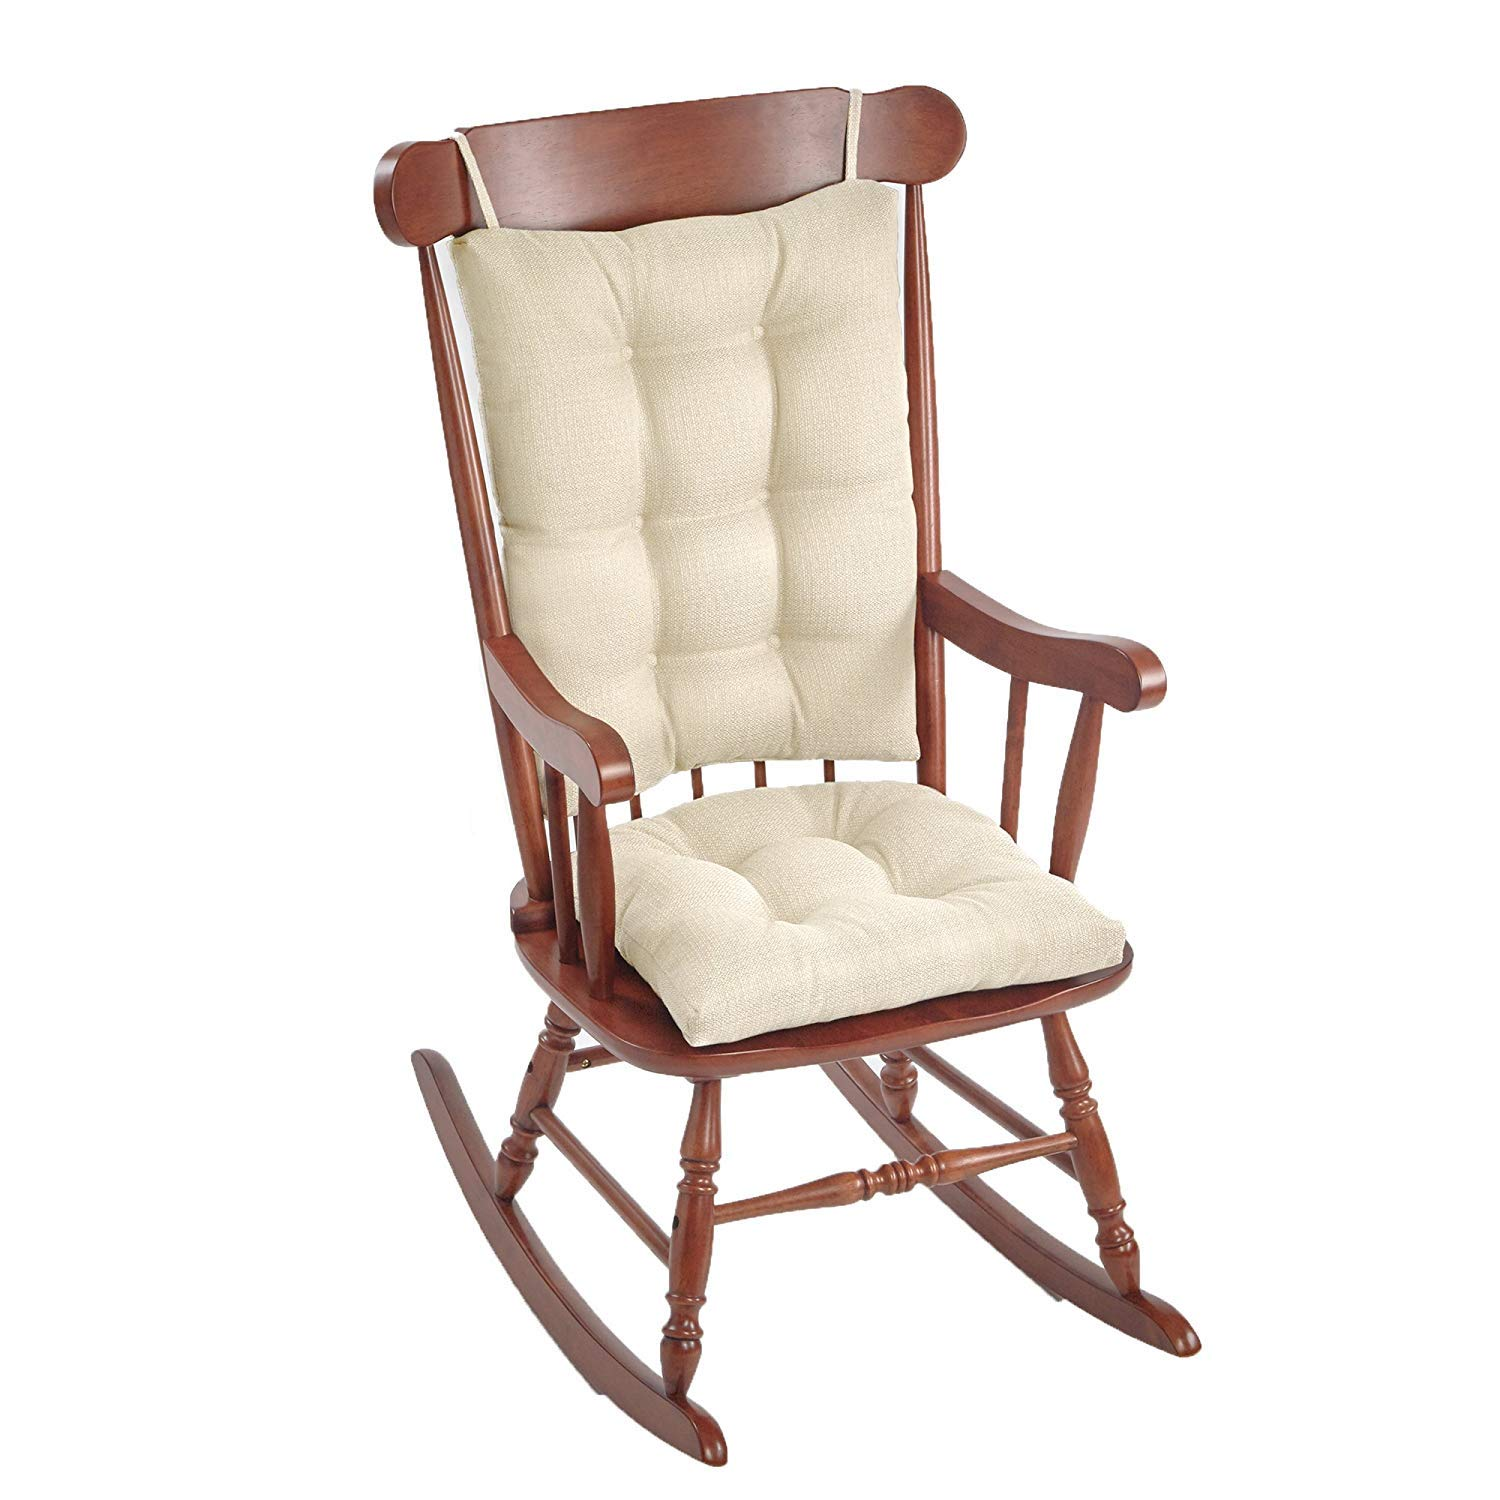 Klear Vu Omega Non-Slip Rocking Chair Pad Set with Seat and Seatback Cushions, 17'' x 17'', Ivory